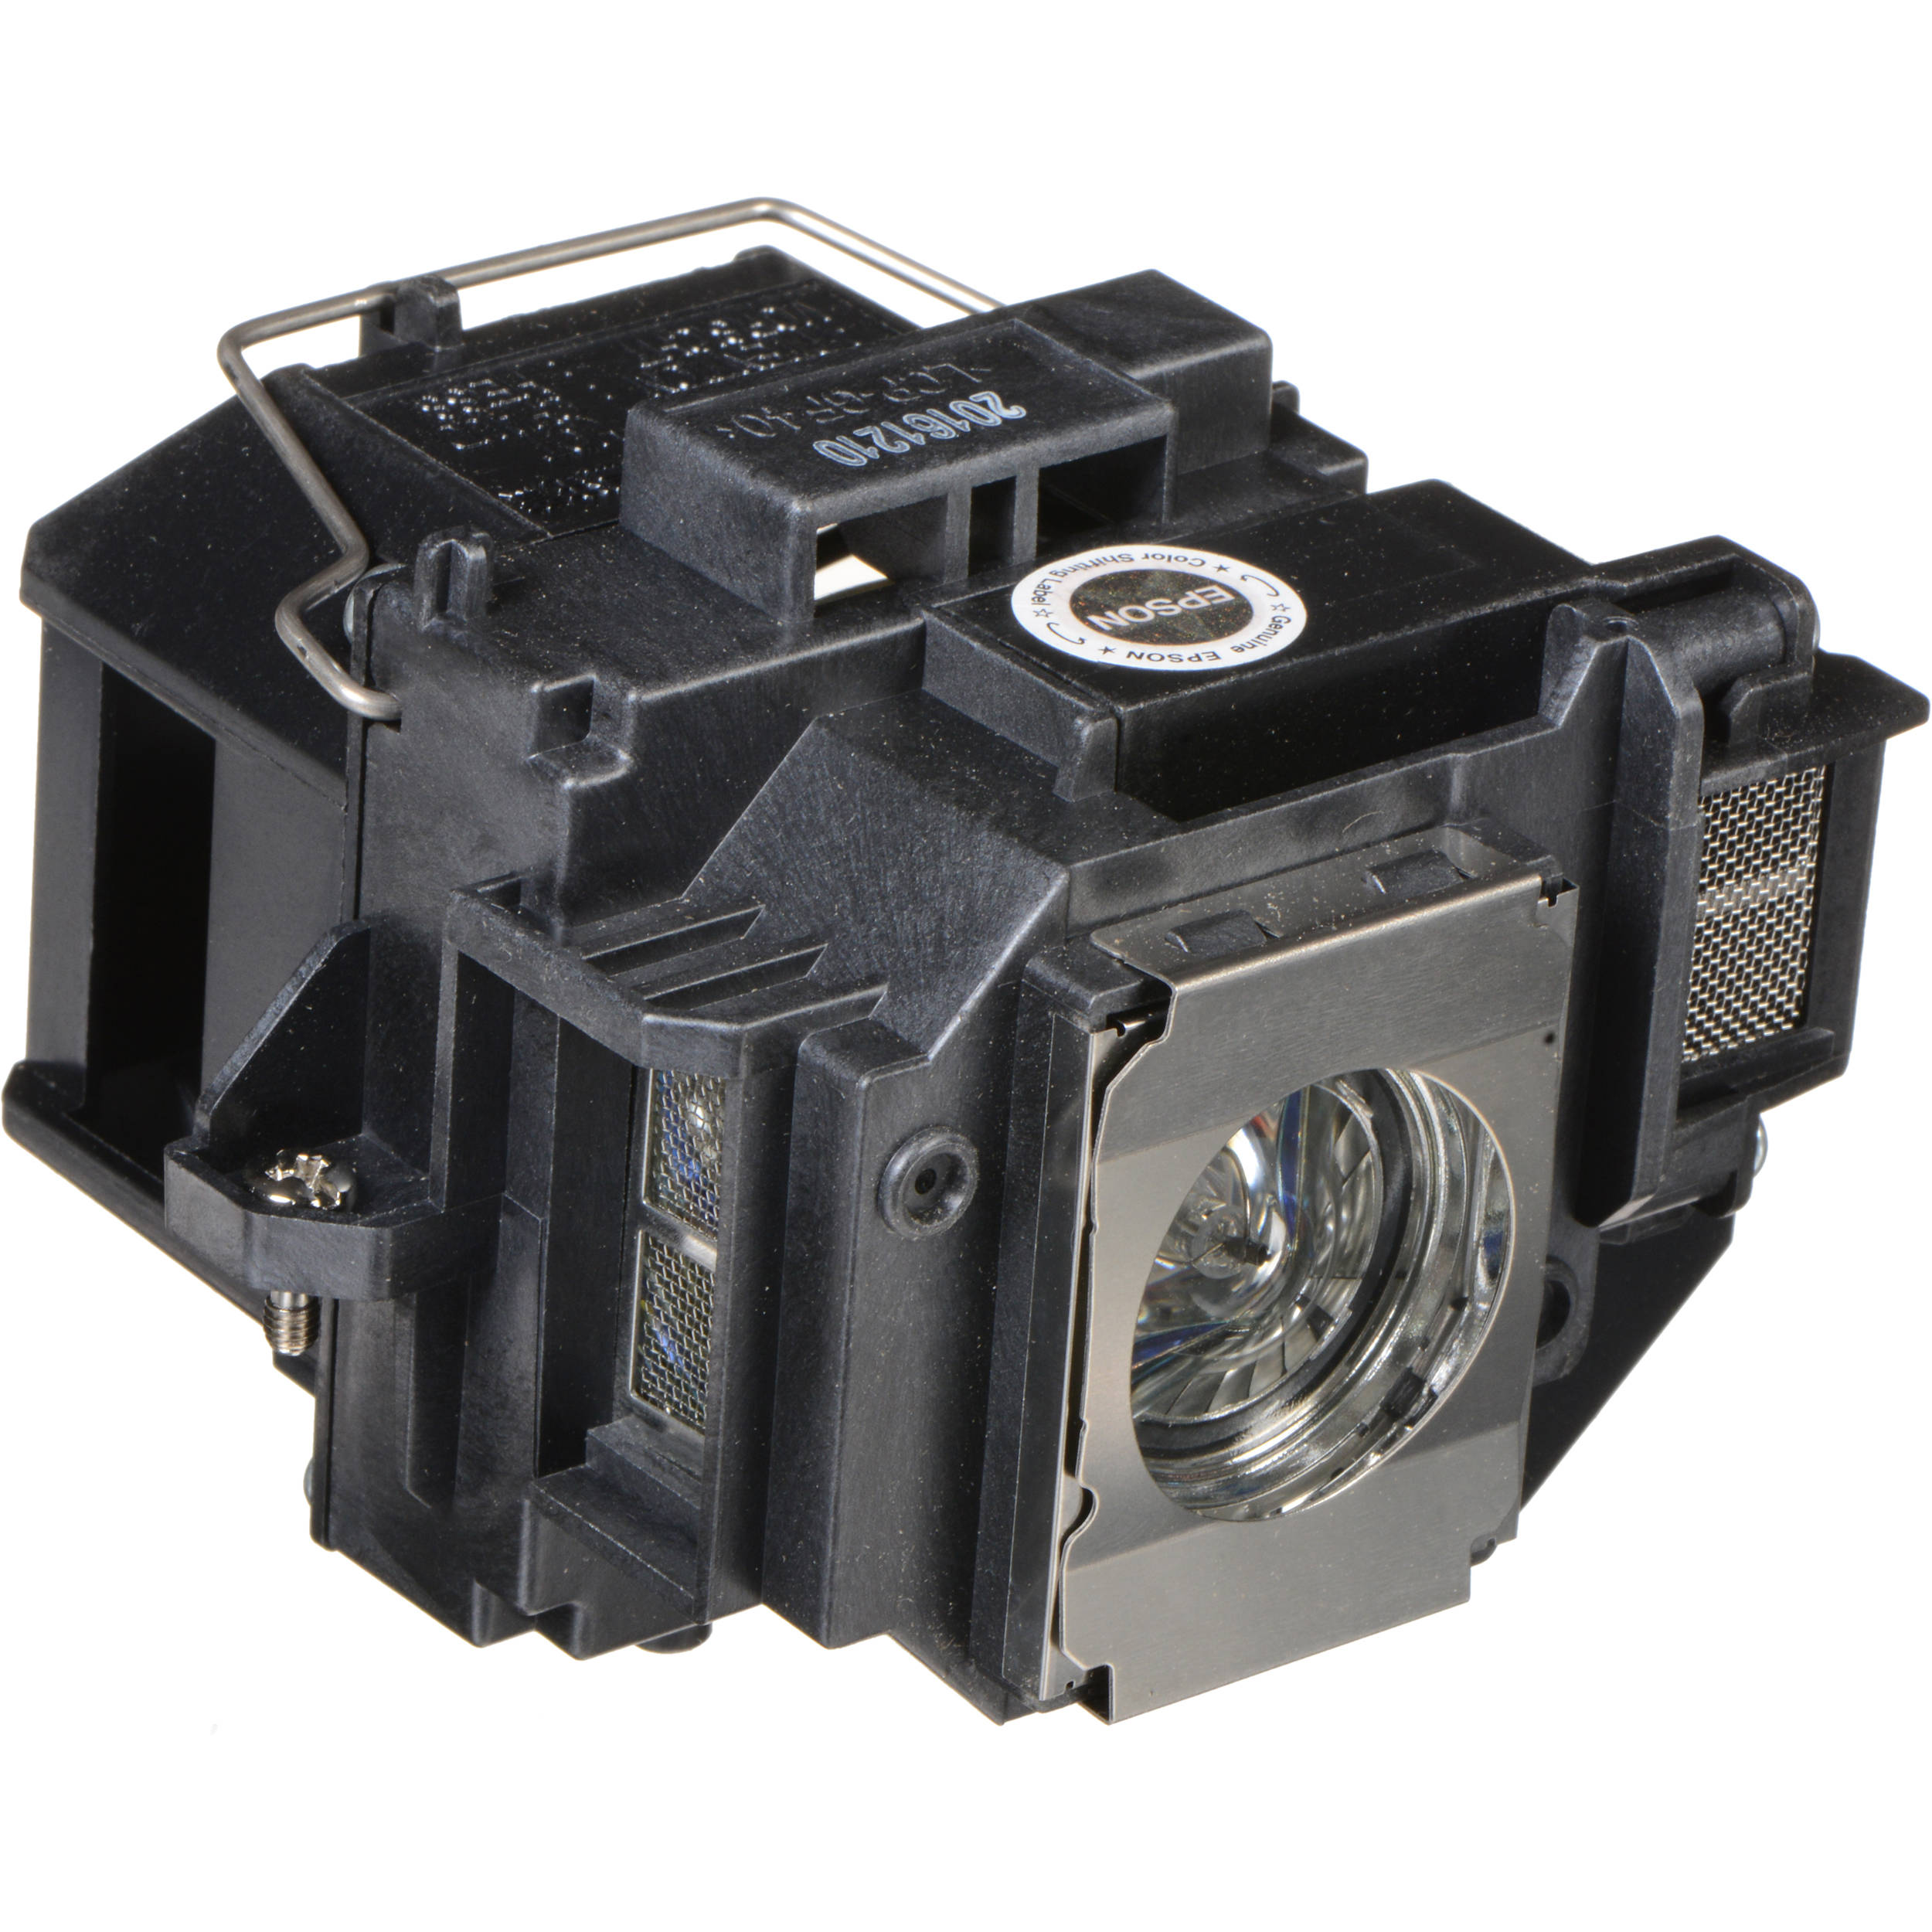 Epson V13H010L54 Projector Replacement Lamp V13H010L54 B&H Photo